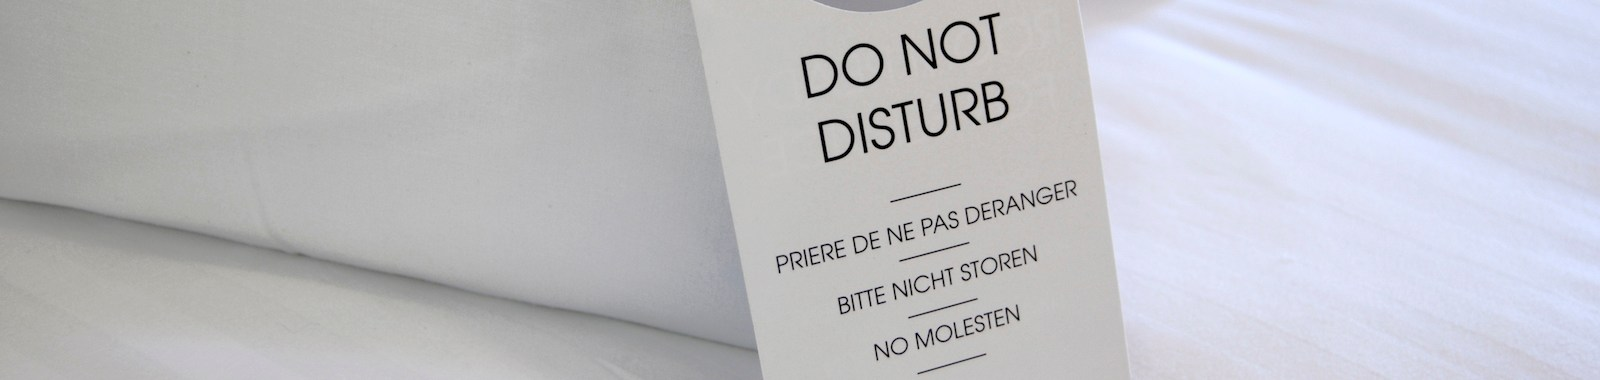 Do Not Disturb Sign on a crisp white bed with the message in French and German as well